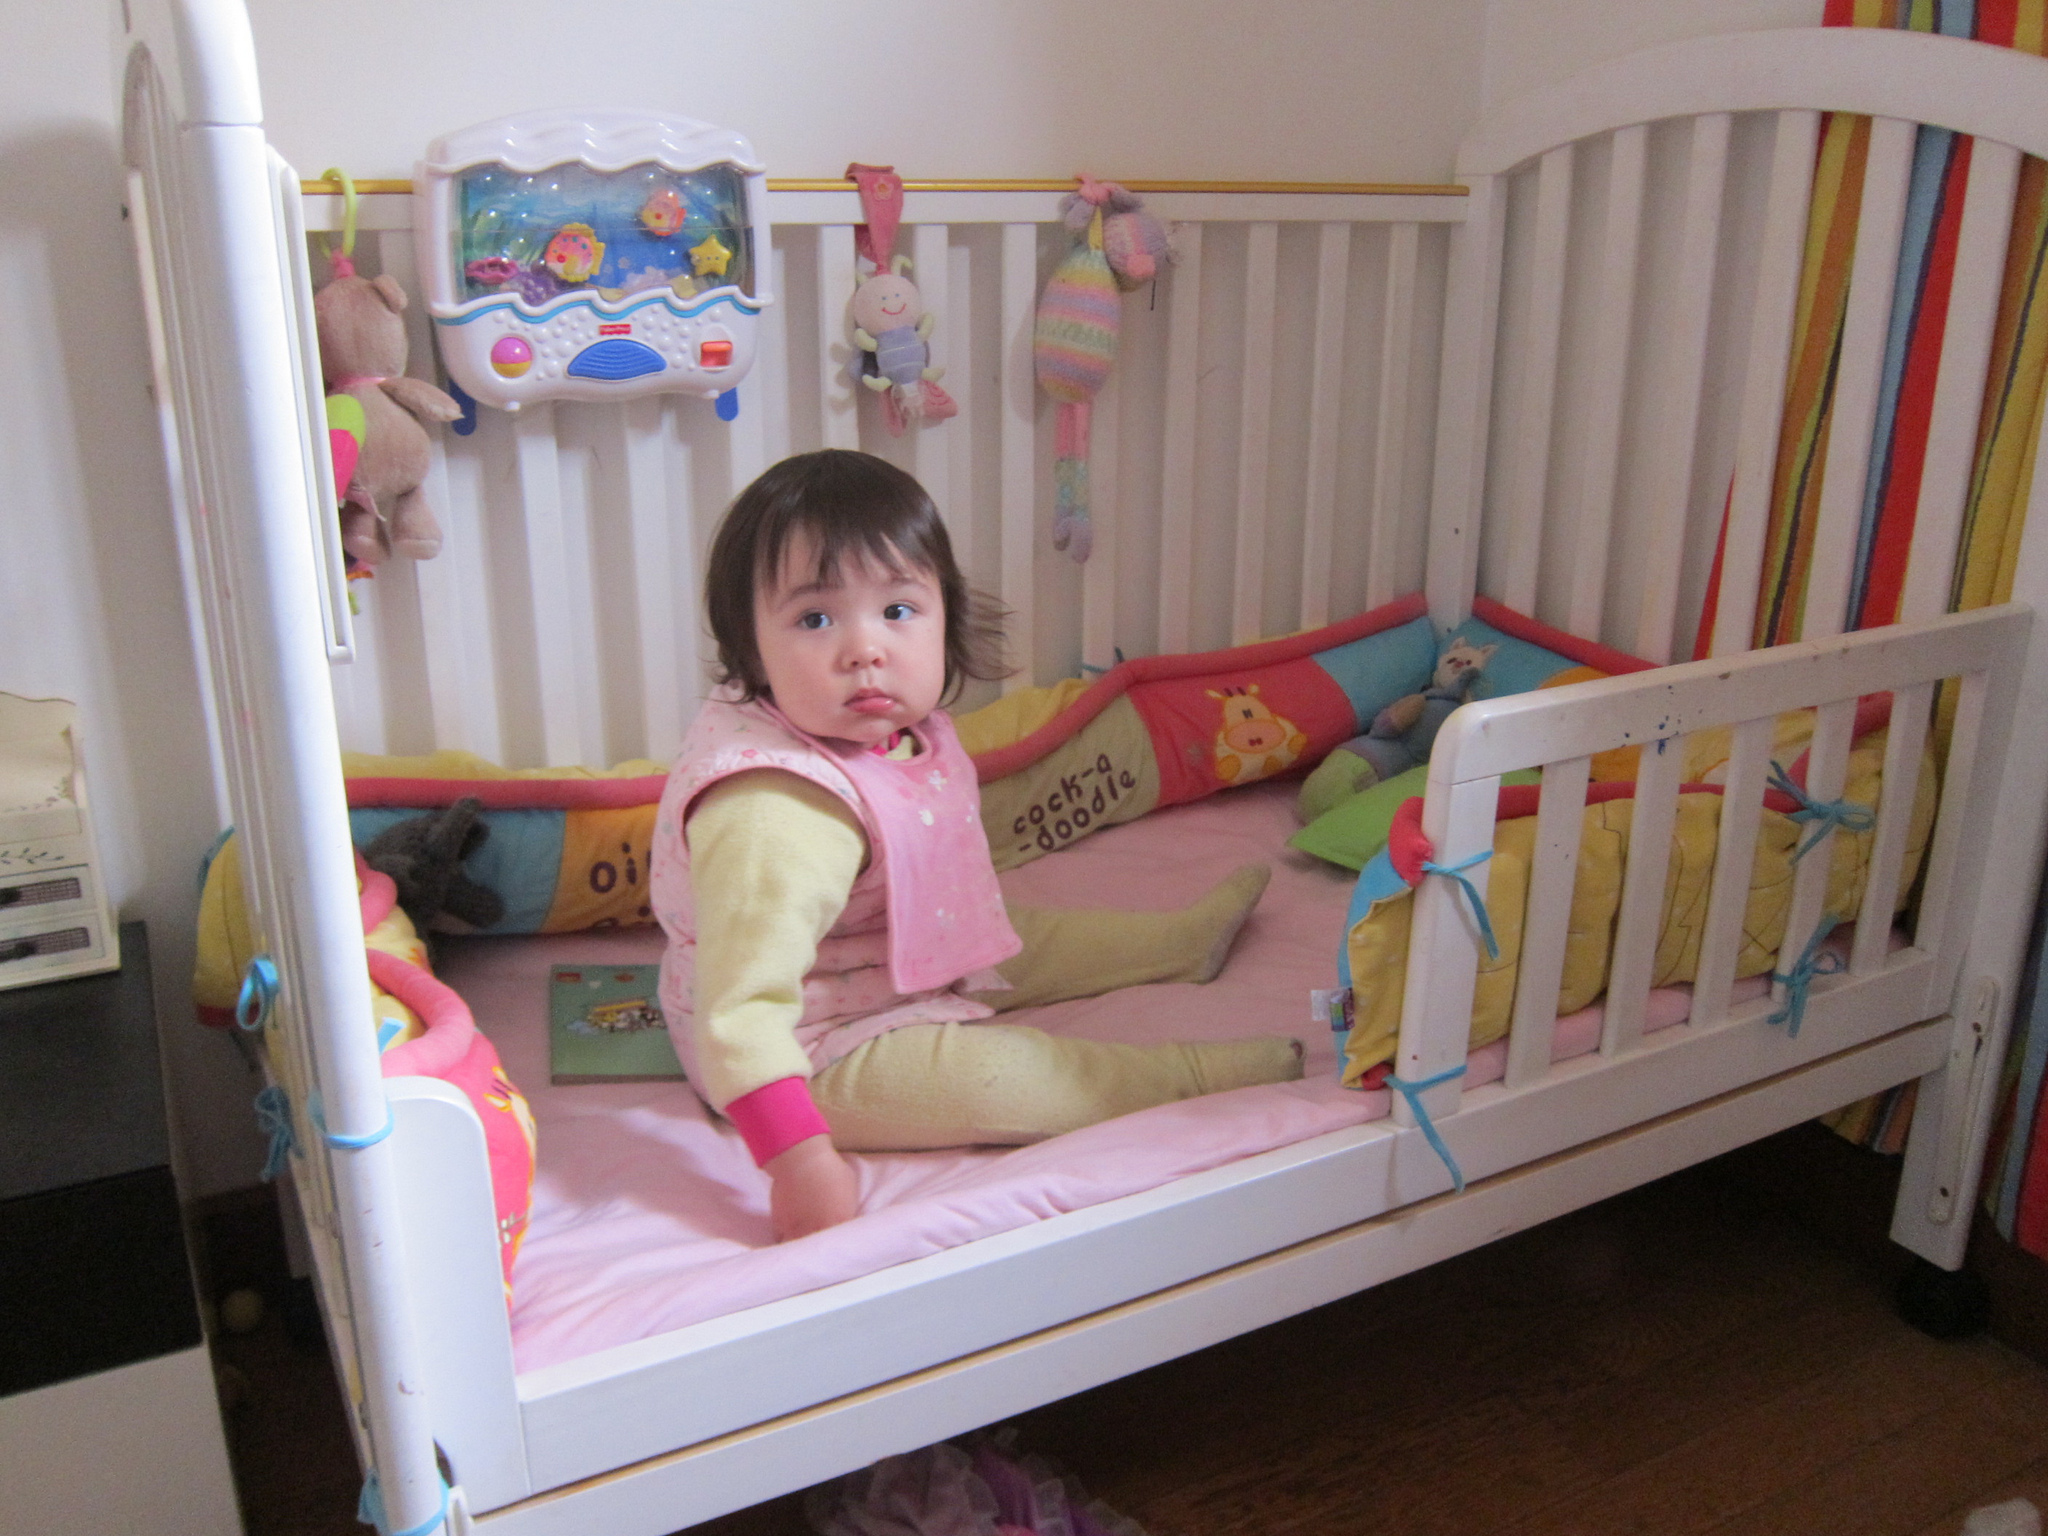 How To Have A Successful Transition From Crib To Bed